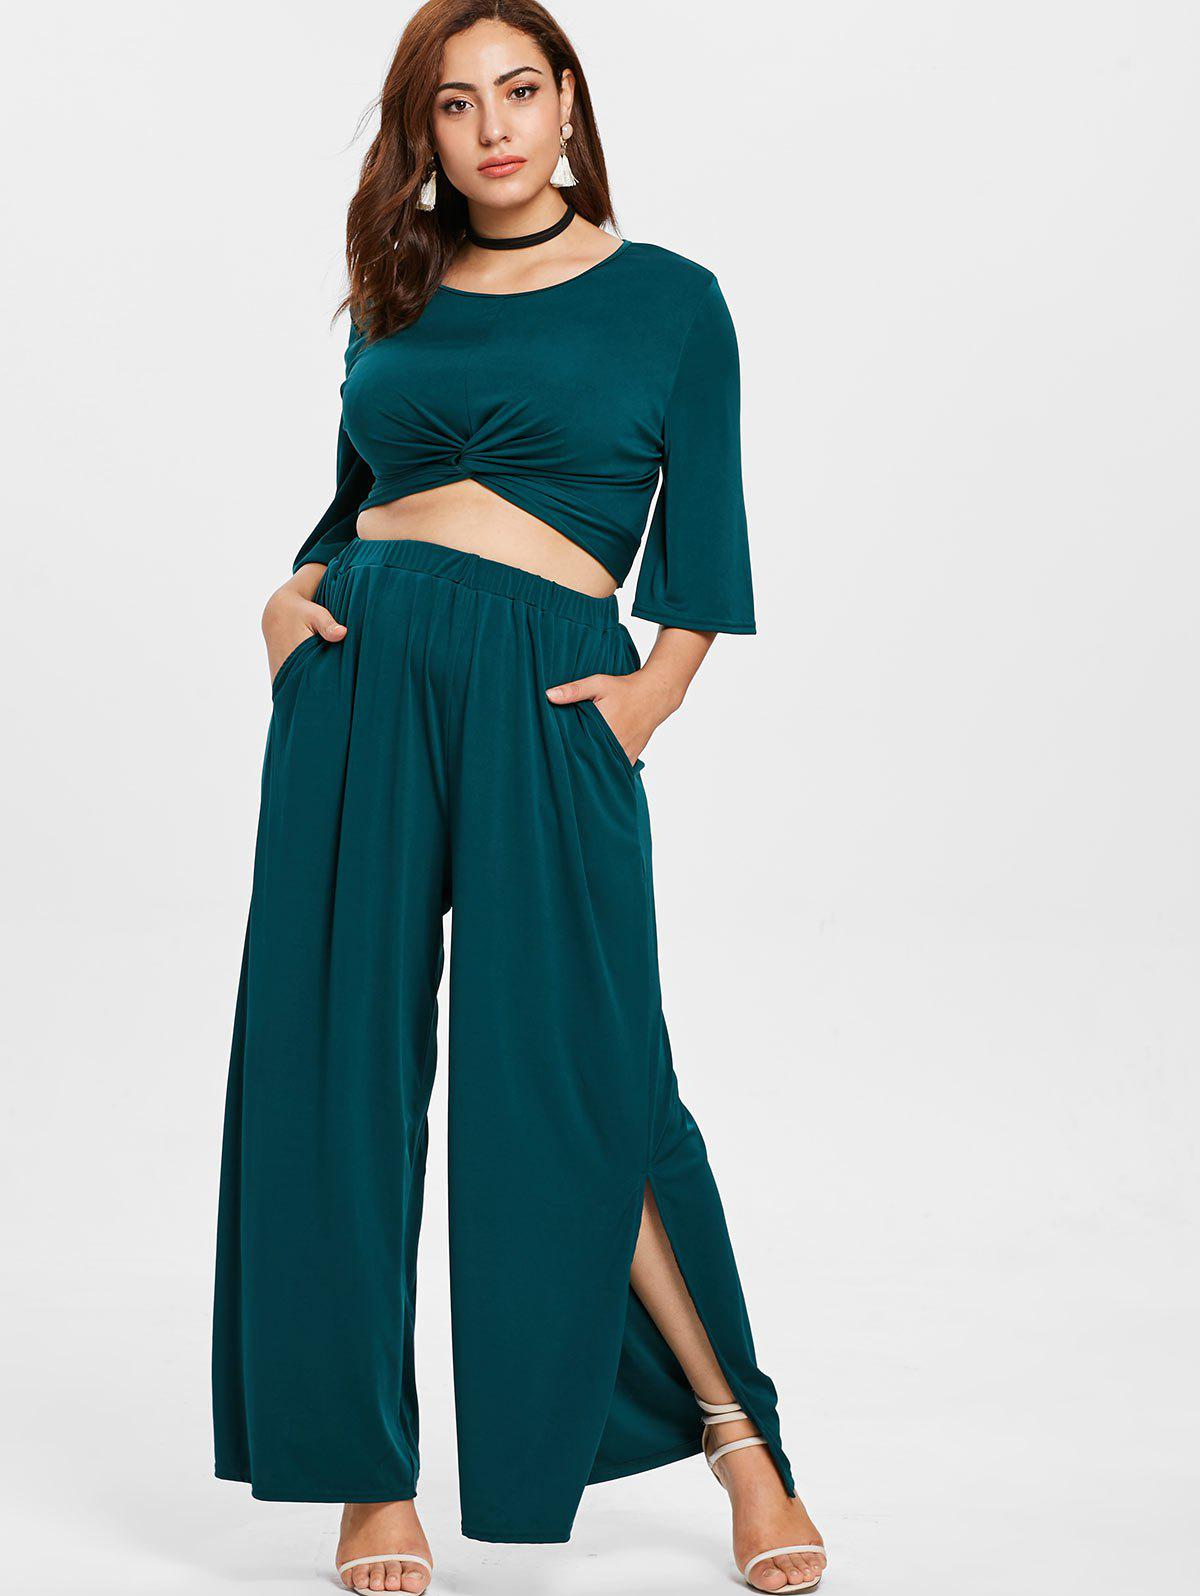 Fancy Plus Size Twist Top and High Waisted Pants